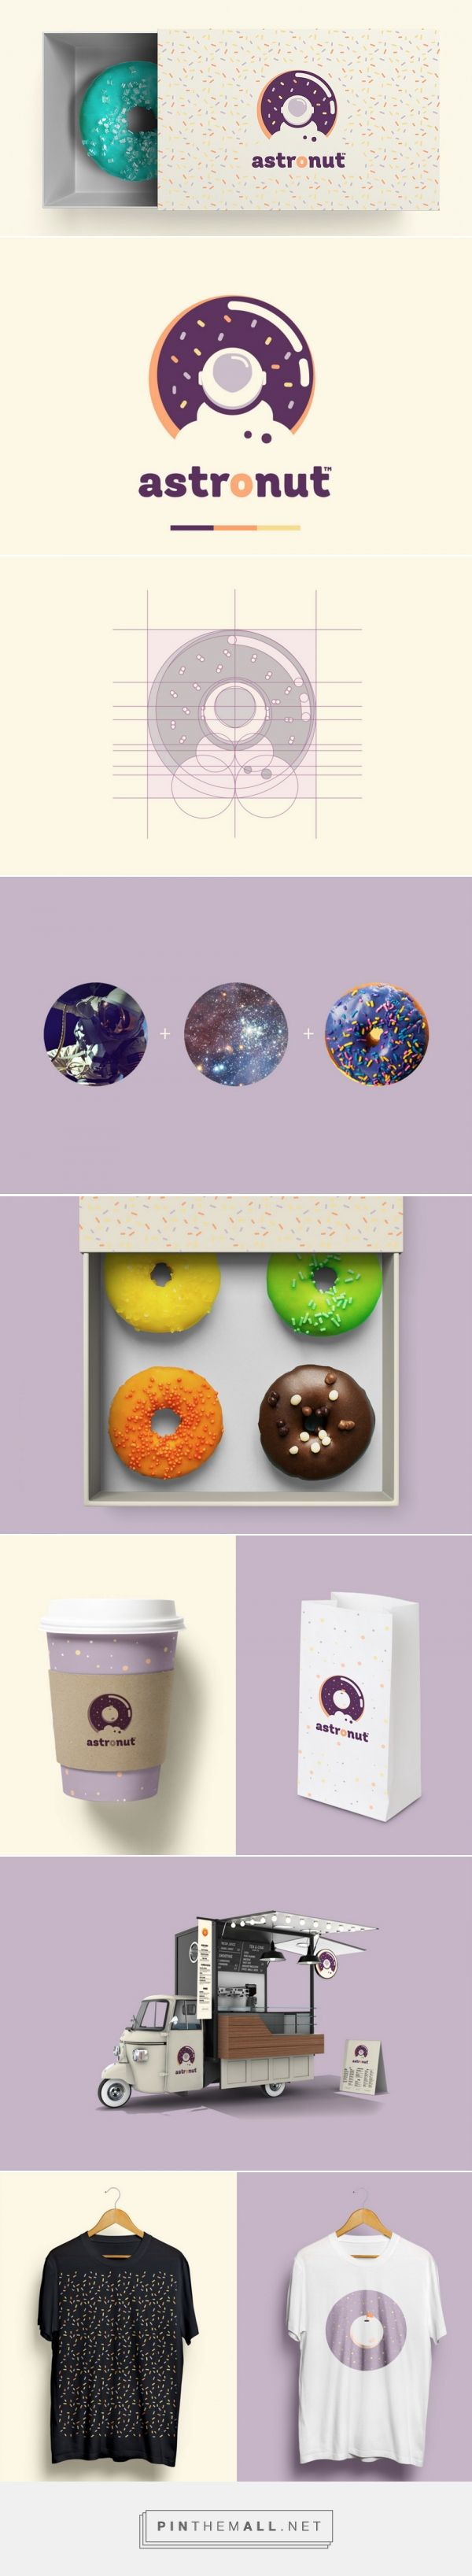 Astronut® Donuts from Outer space — The Dieline - Branding & Packaging - created via https://pinthemall.net